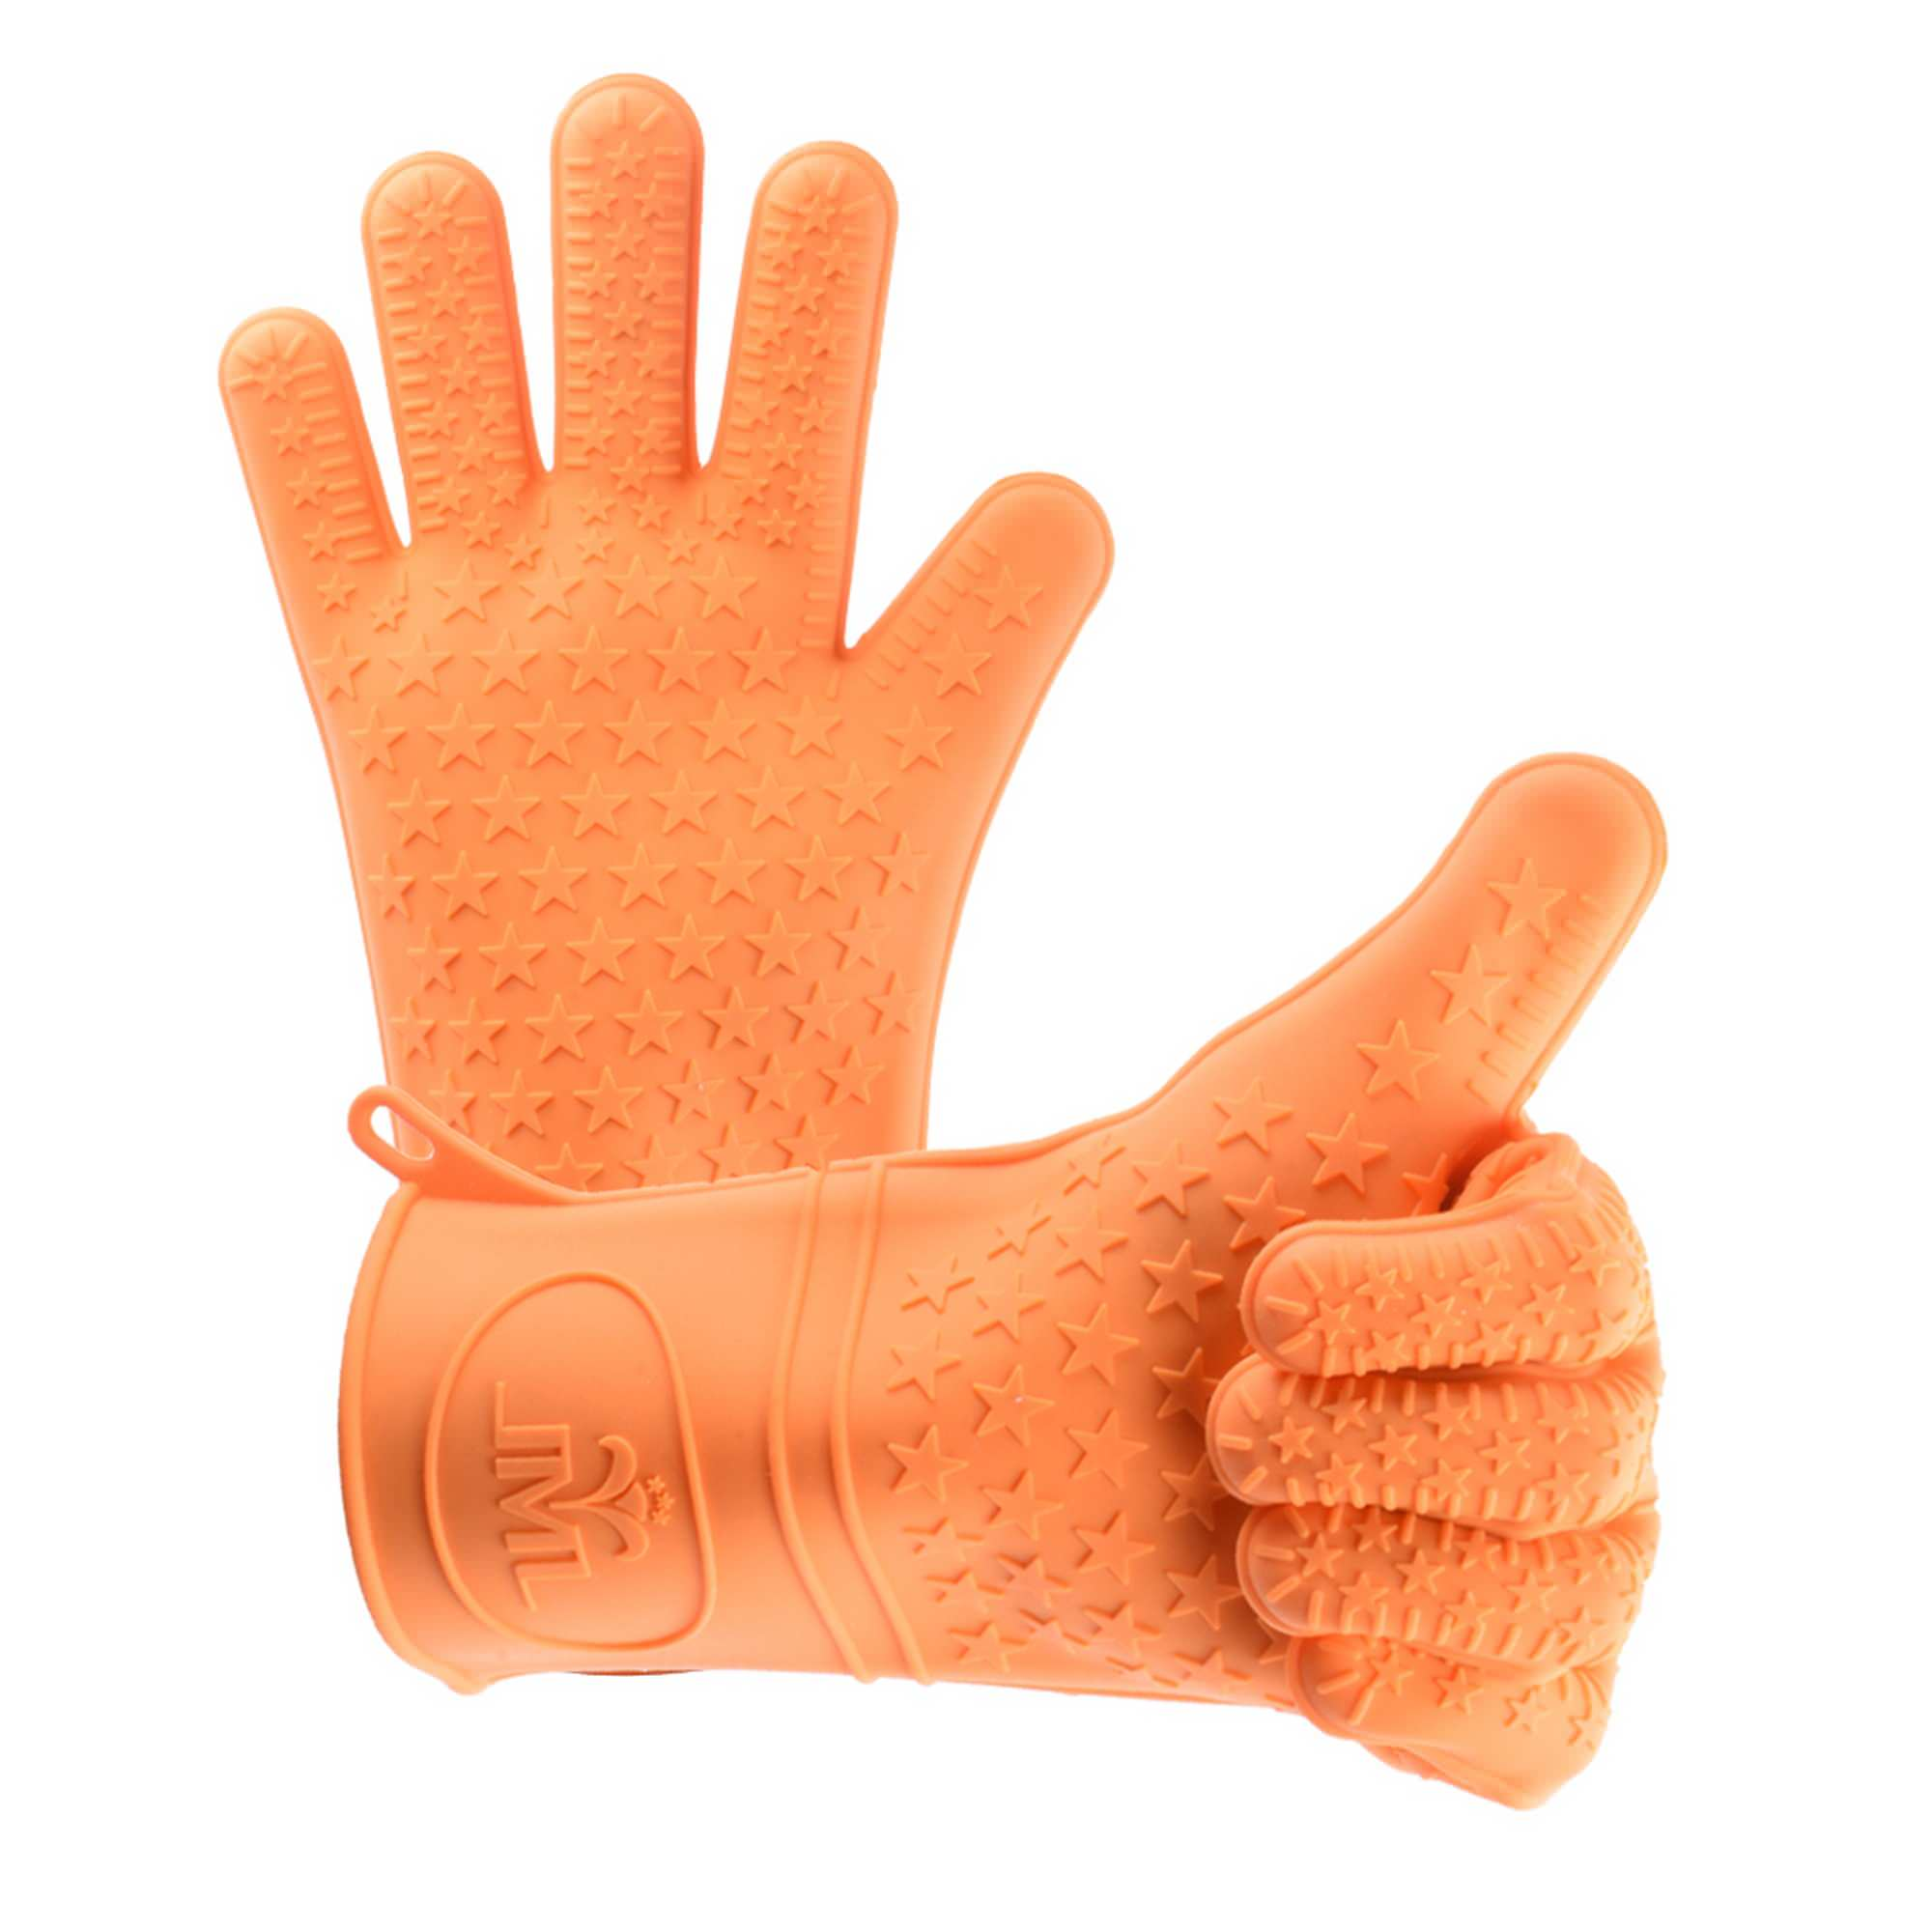 JML Silicone BBQ Gloves Set Of 2,No-Slip,Heat Resistant Cooking Gloves Oven Mitts For Grilling - Directly Manage Hot Food Orange